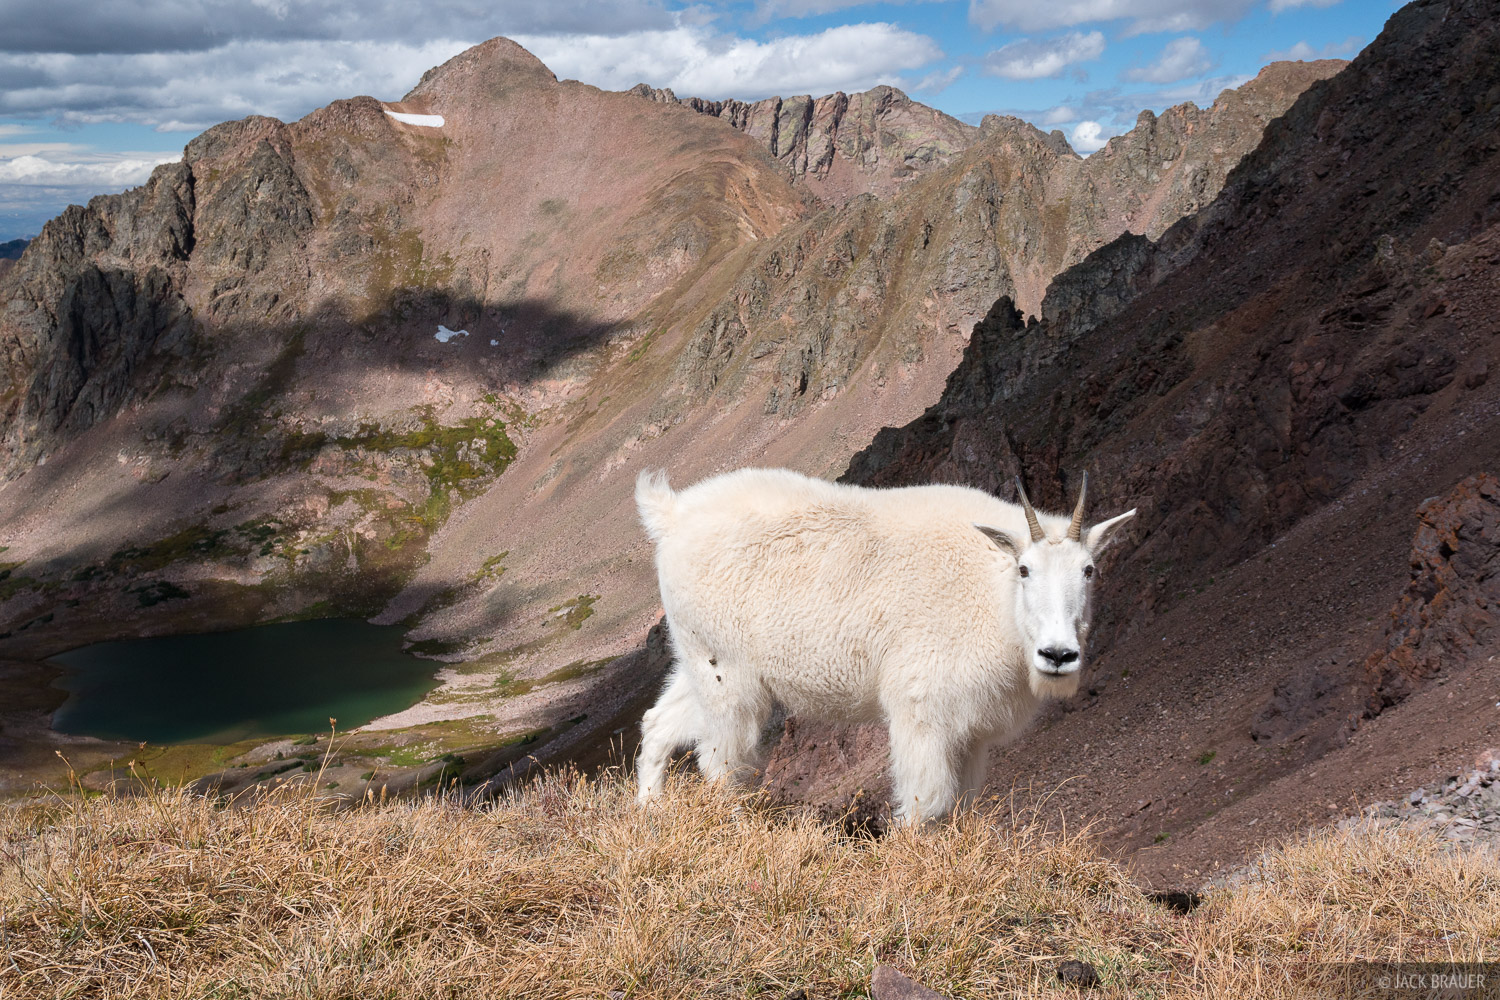 Colorado, Deluge Lake, Gore Range, mountain goat, Eagles Nest Wilderness, photo